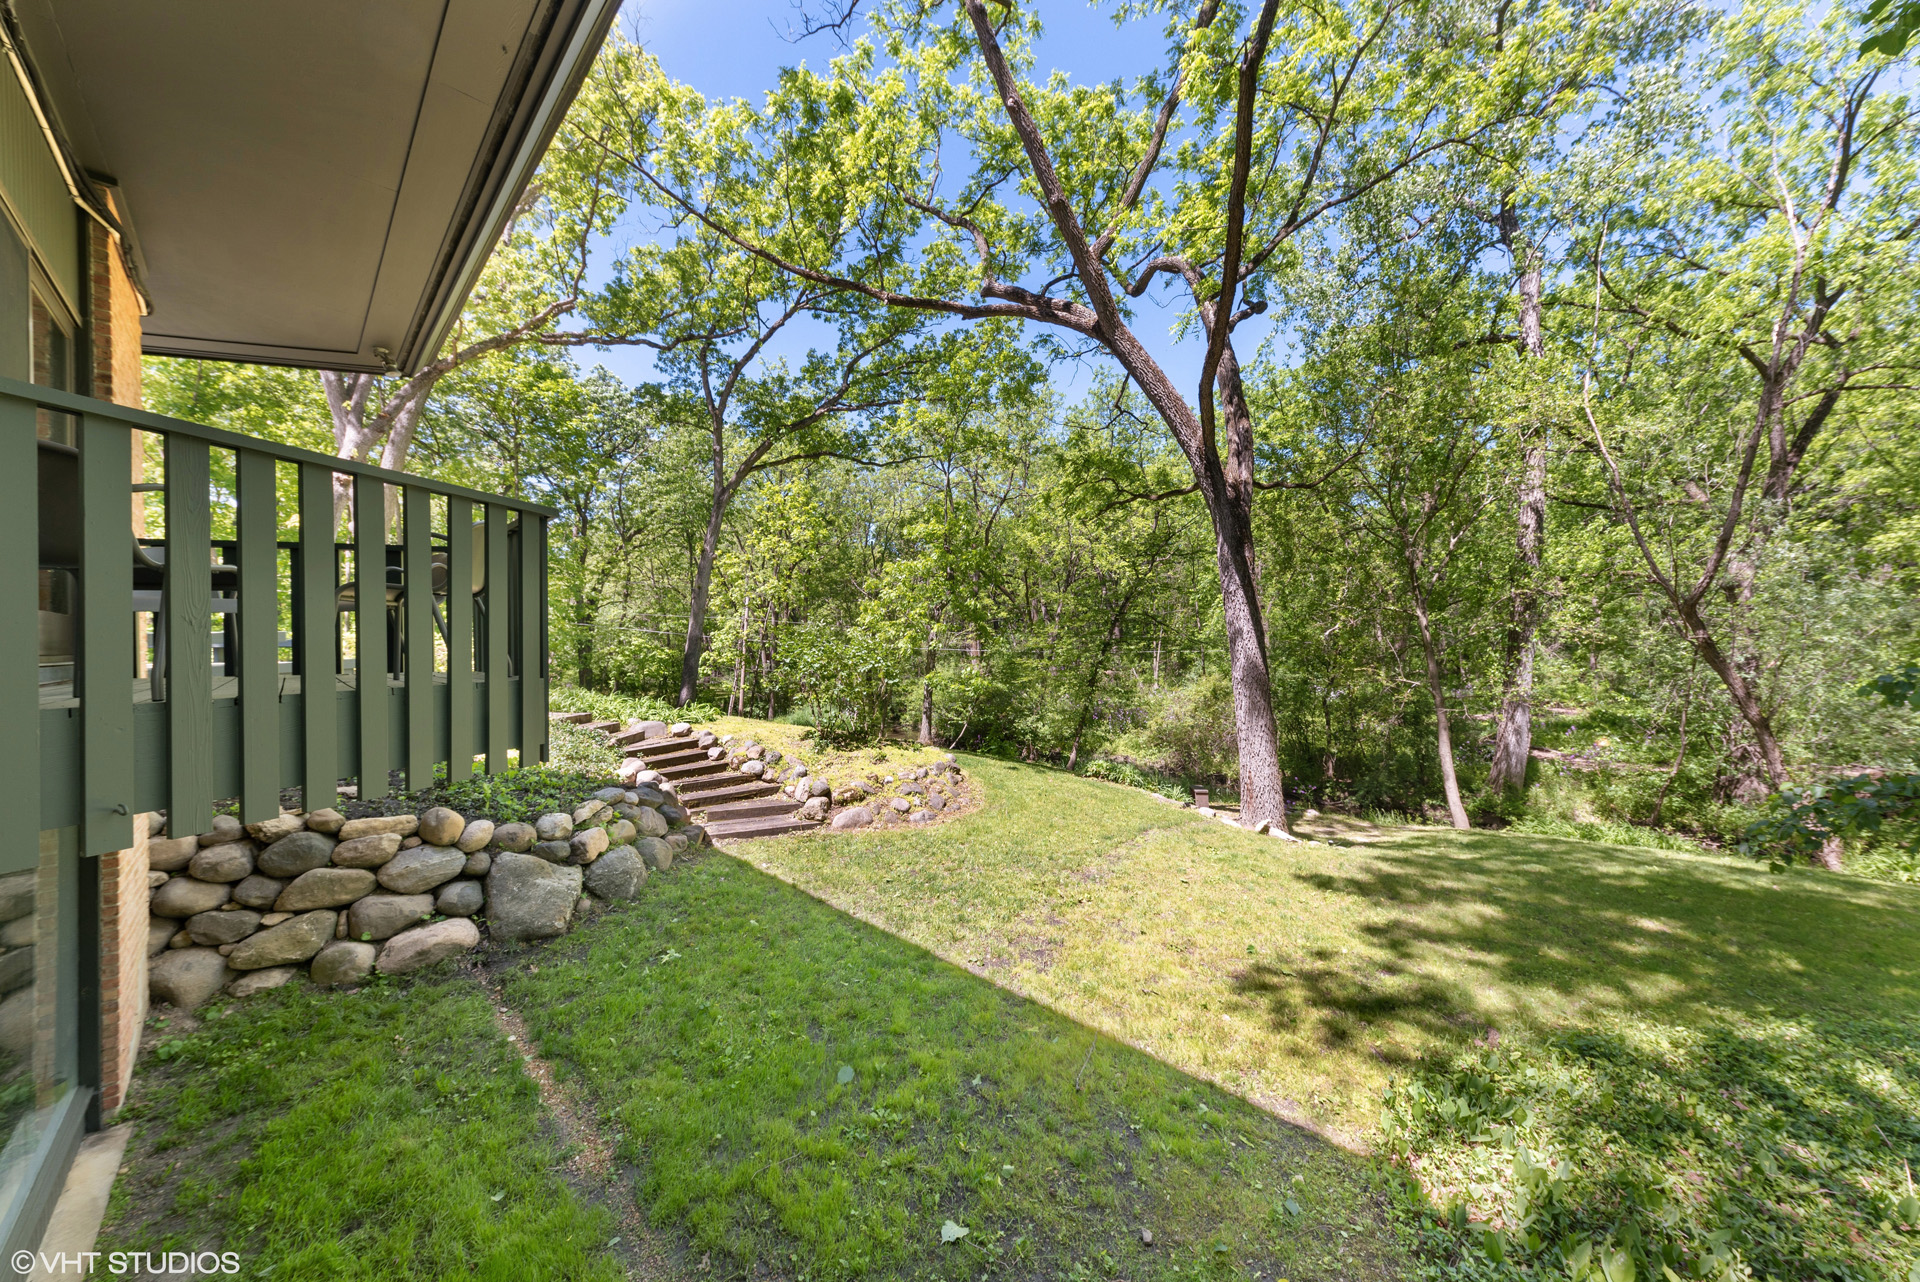 21434 W Oak Trail, designed by Tivadar Balogh. Contact Lou Zucaro at 312.907.4085 or lou@modernil.com to arrange for a private showing.